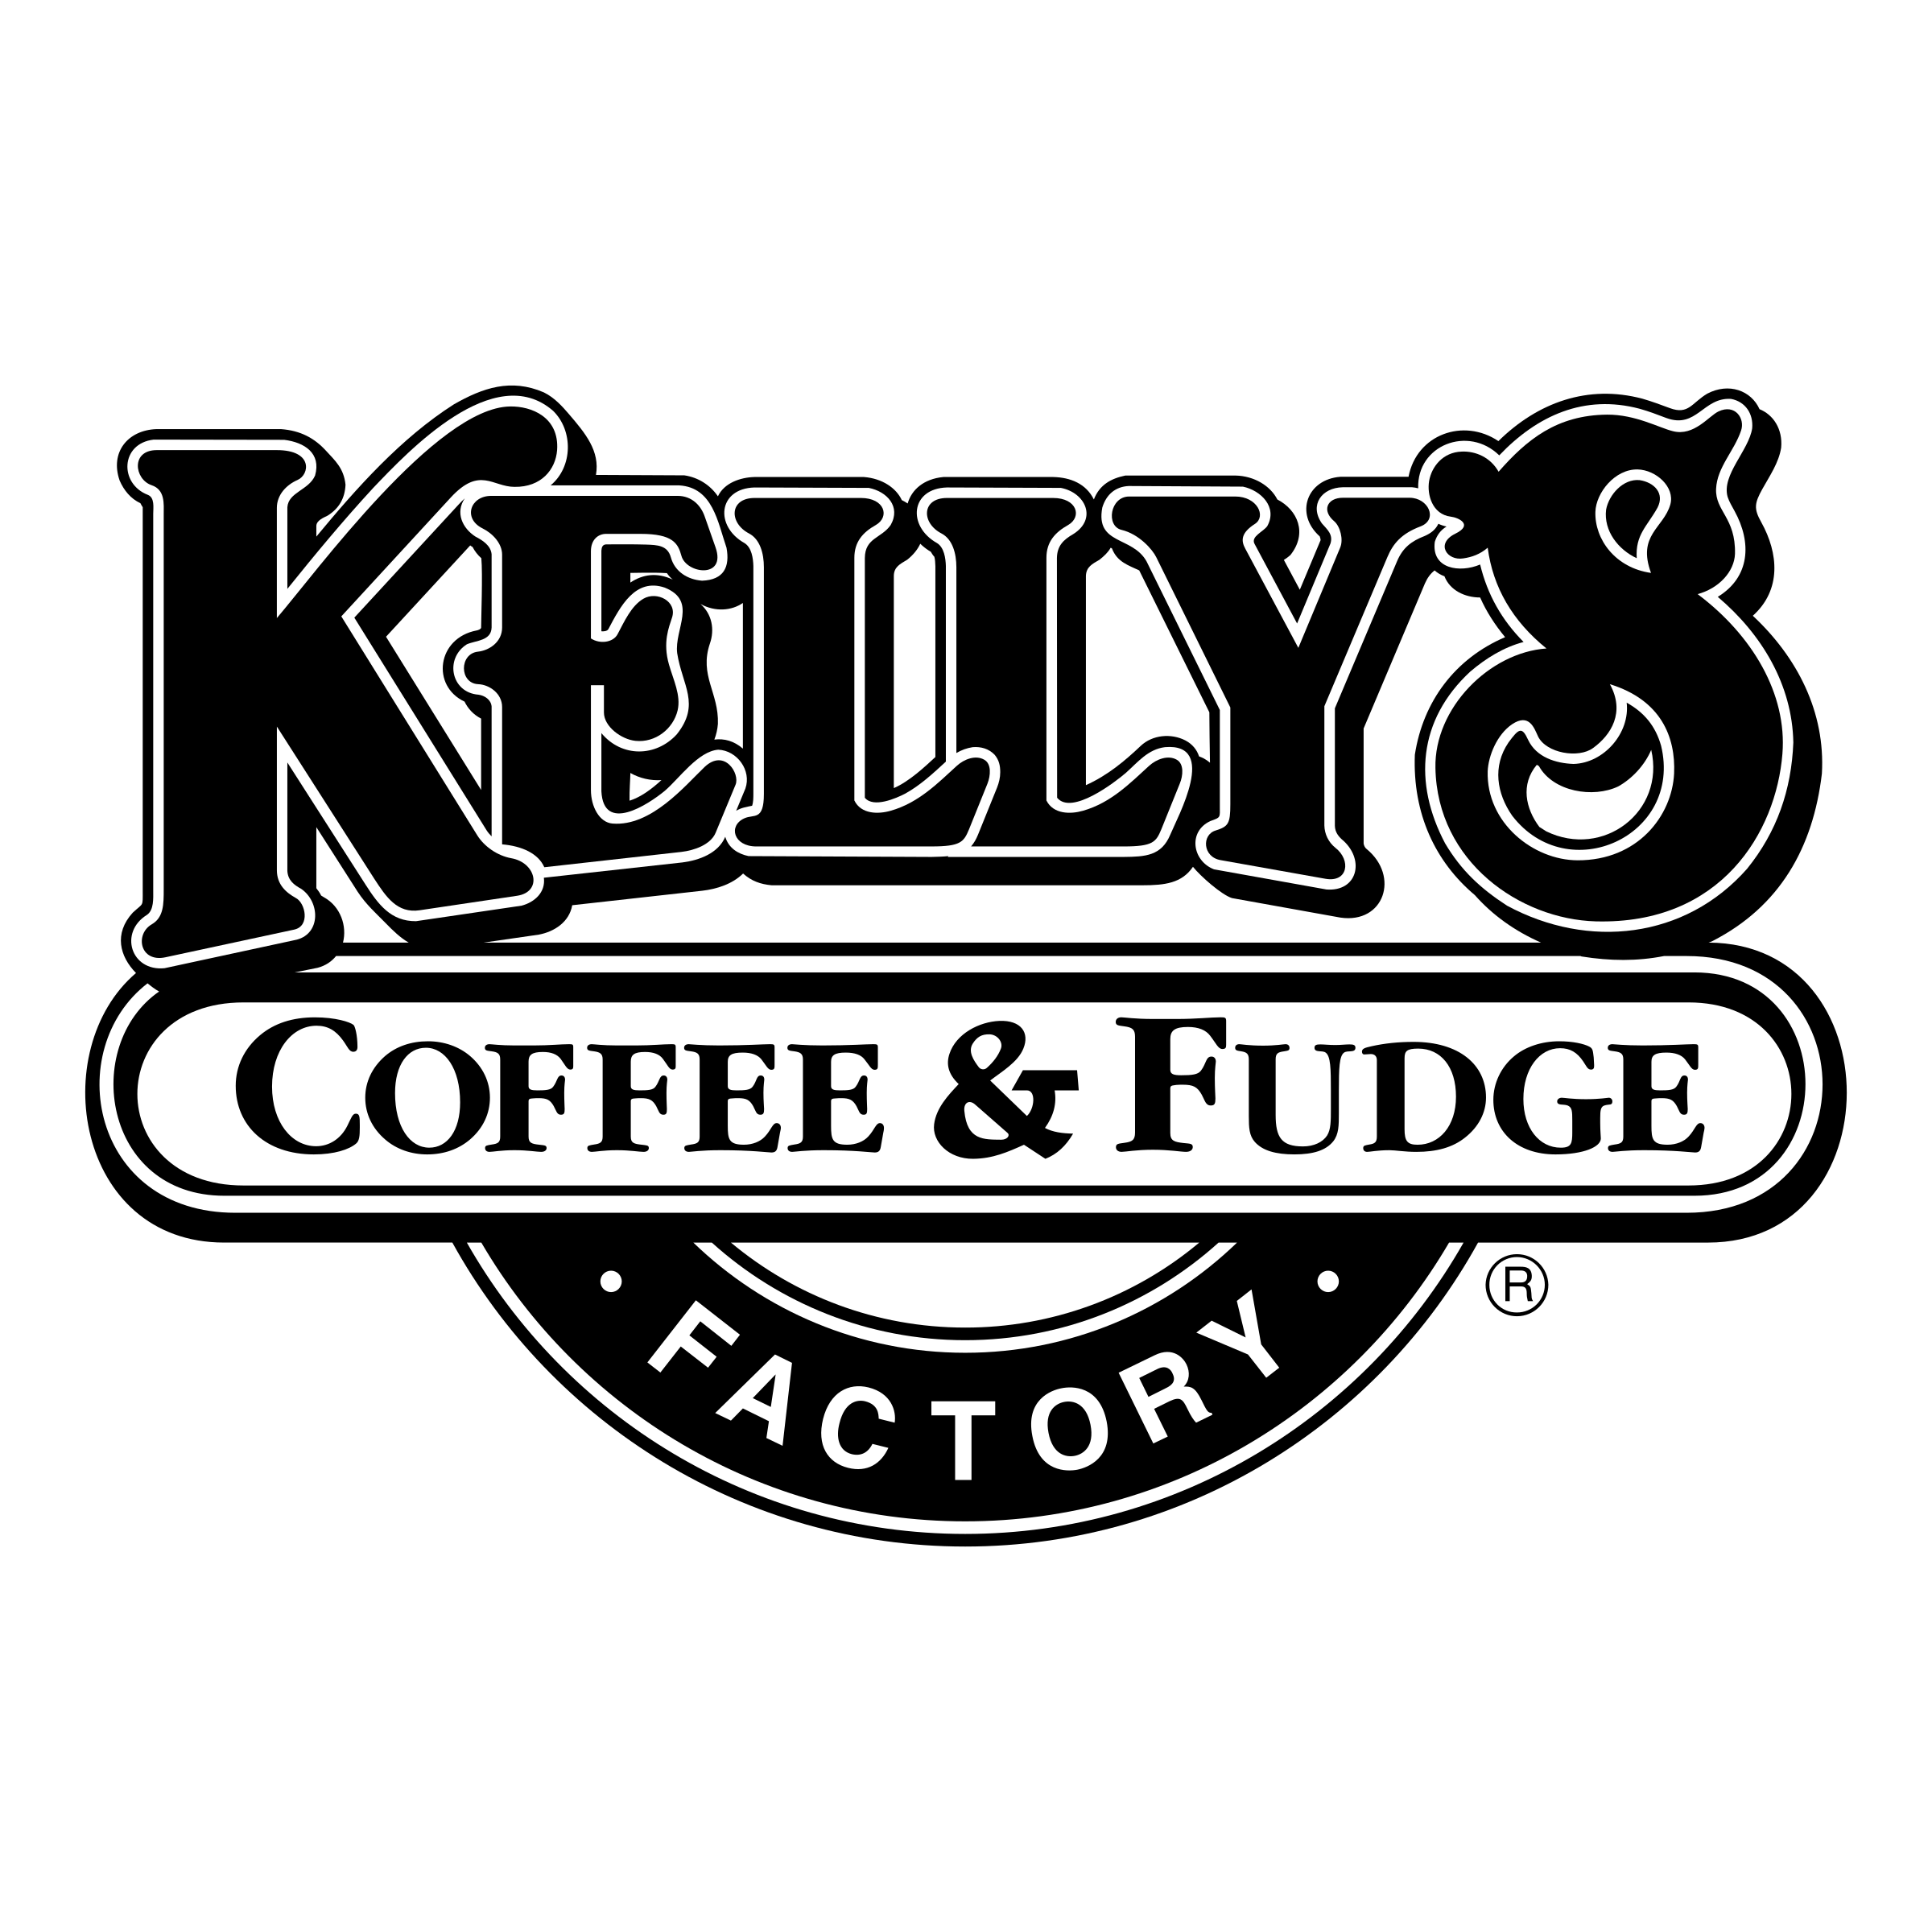 Vector factory coffee. Kelly s fudge logo